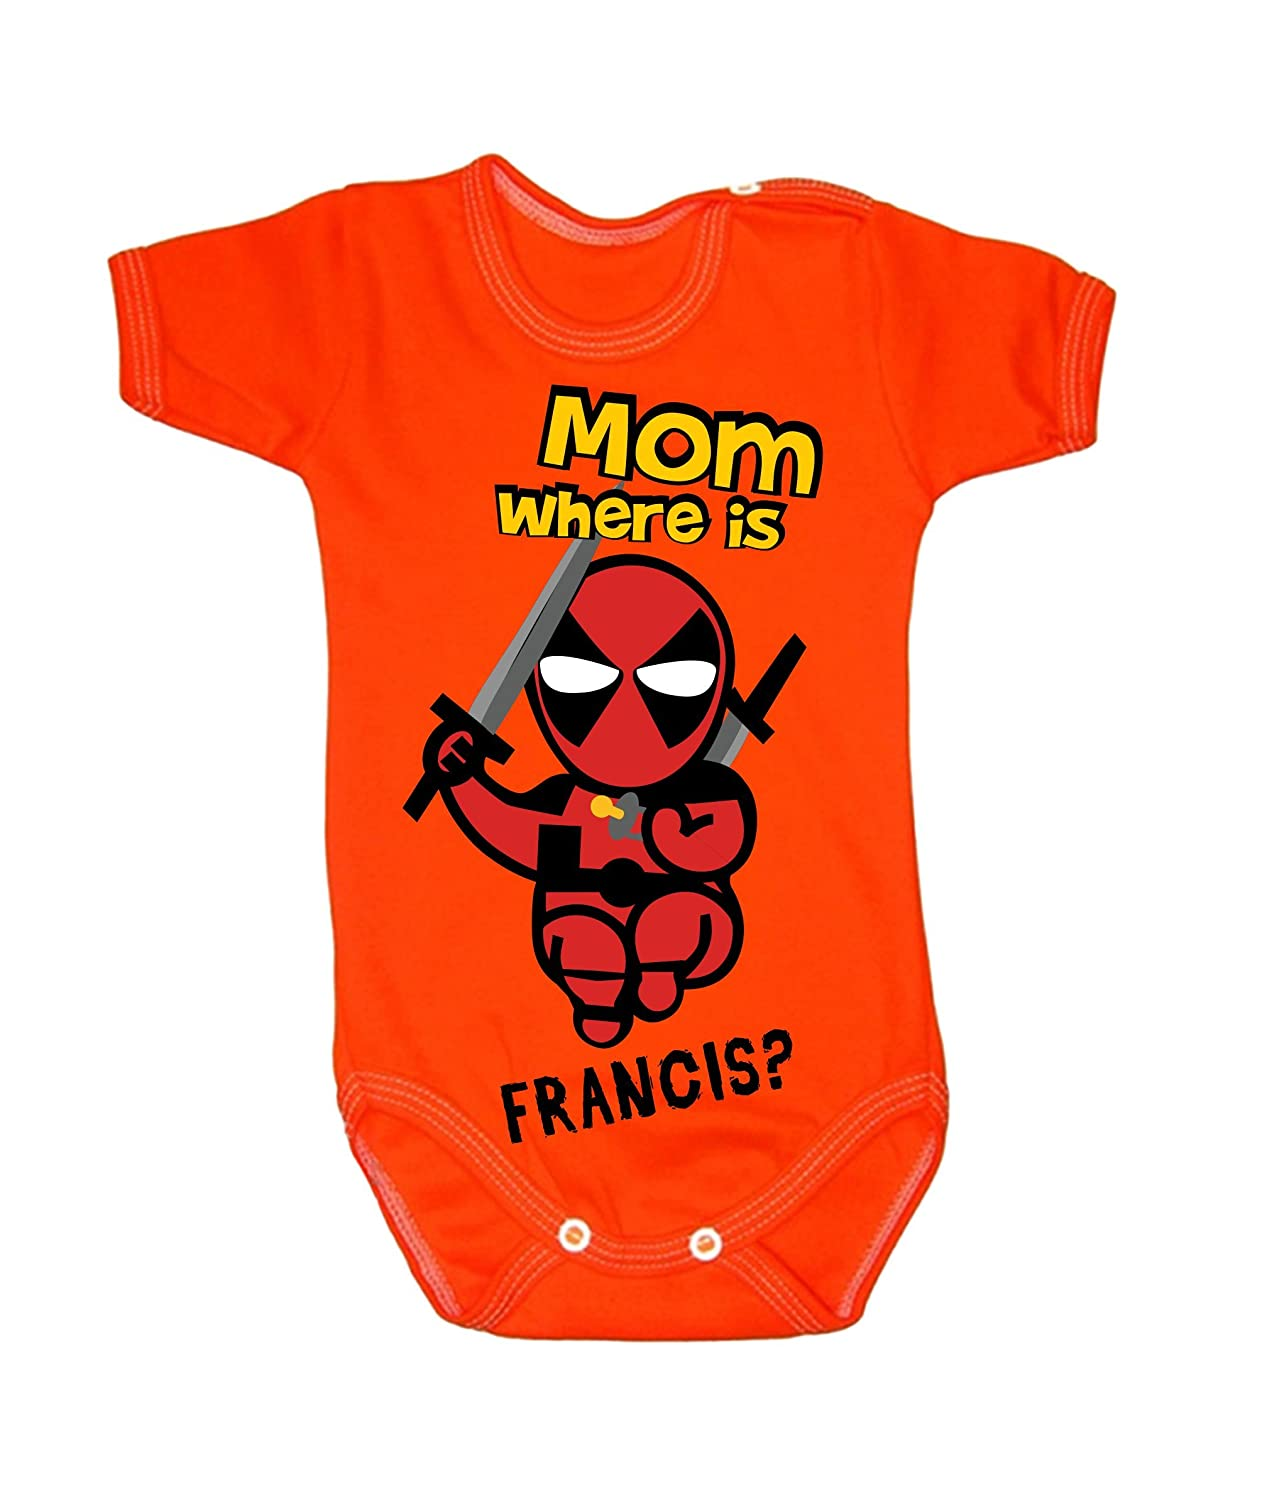 Deadpool Baby Grow Body Suit Vest Mum Where Is Francis baby shower gift